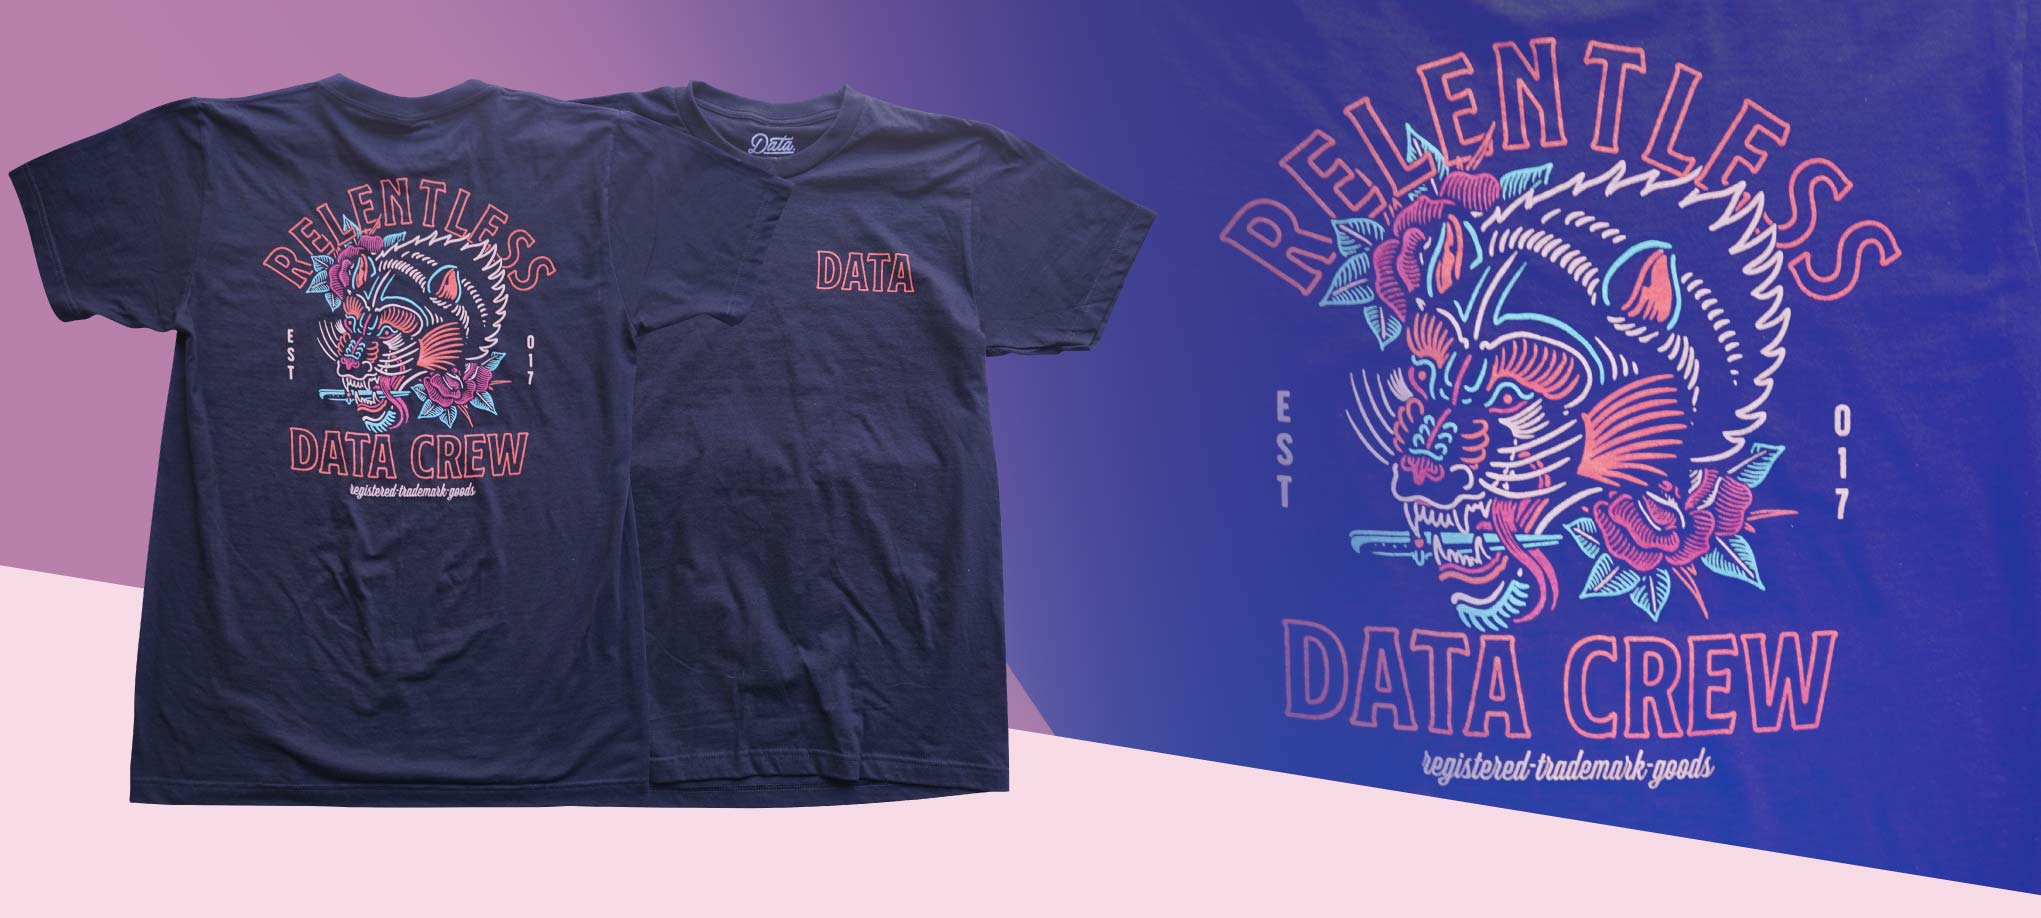 Relentless Shirt shirt Data Crew | DataCrew